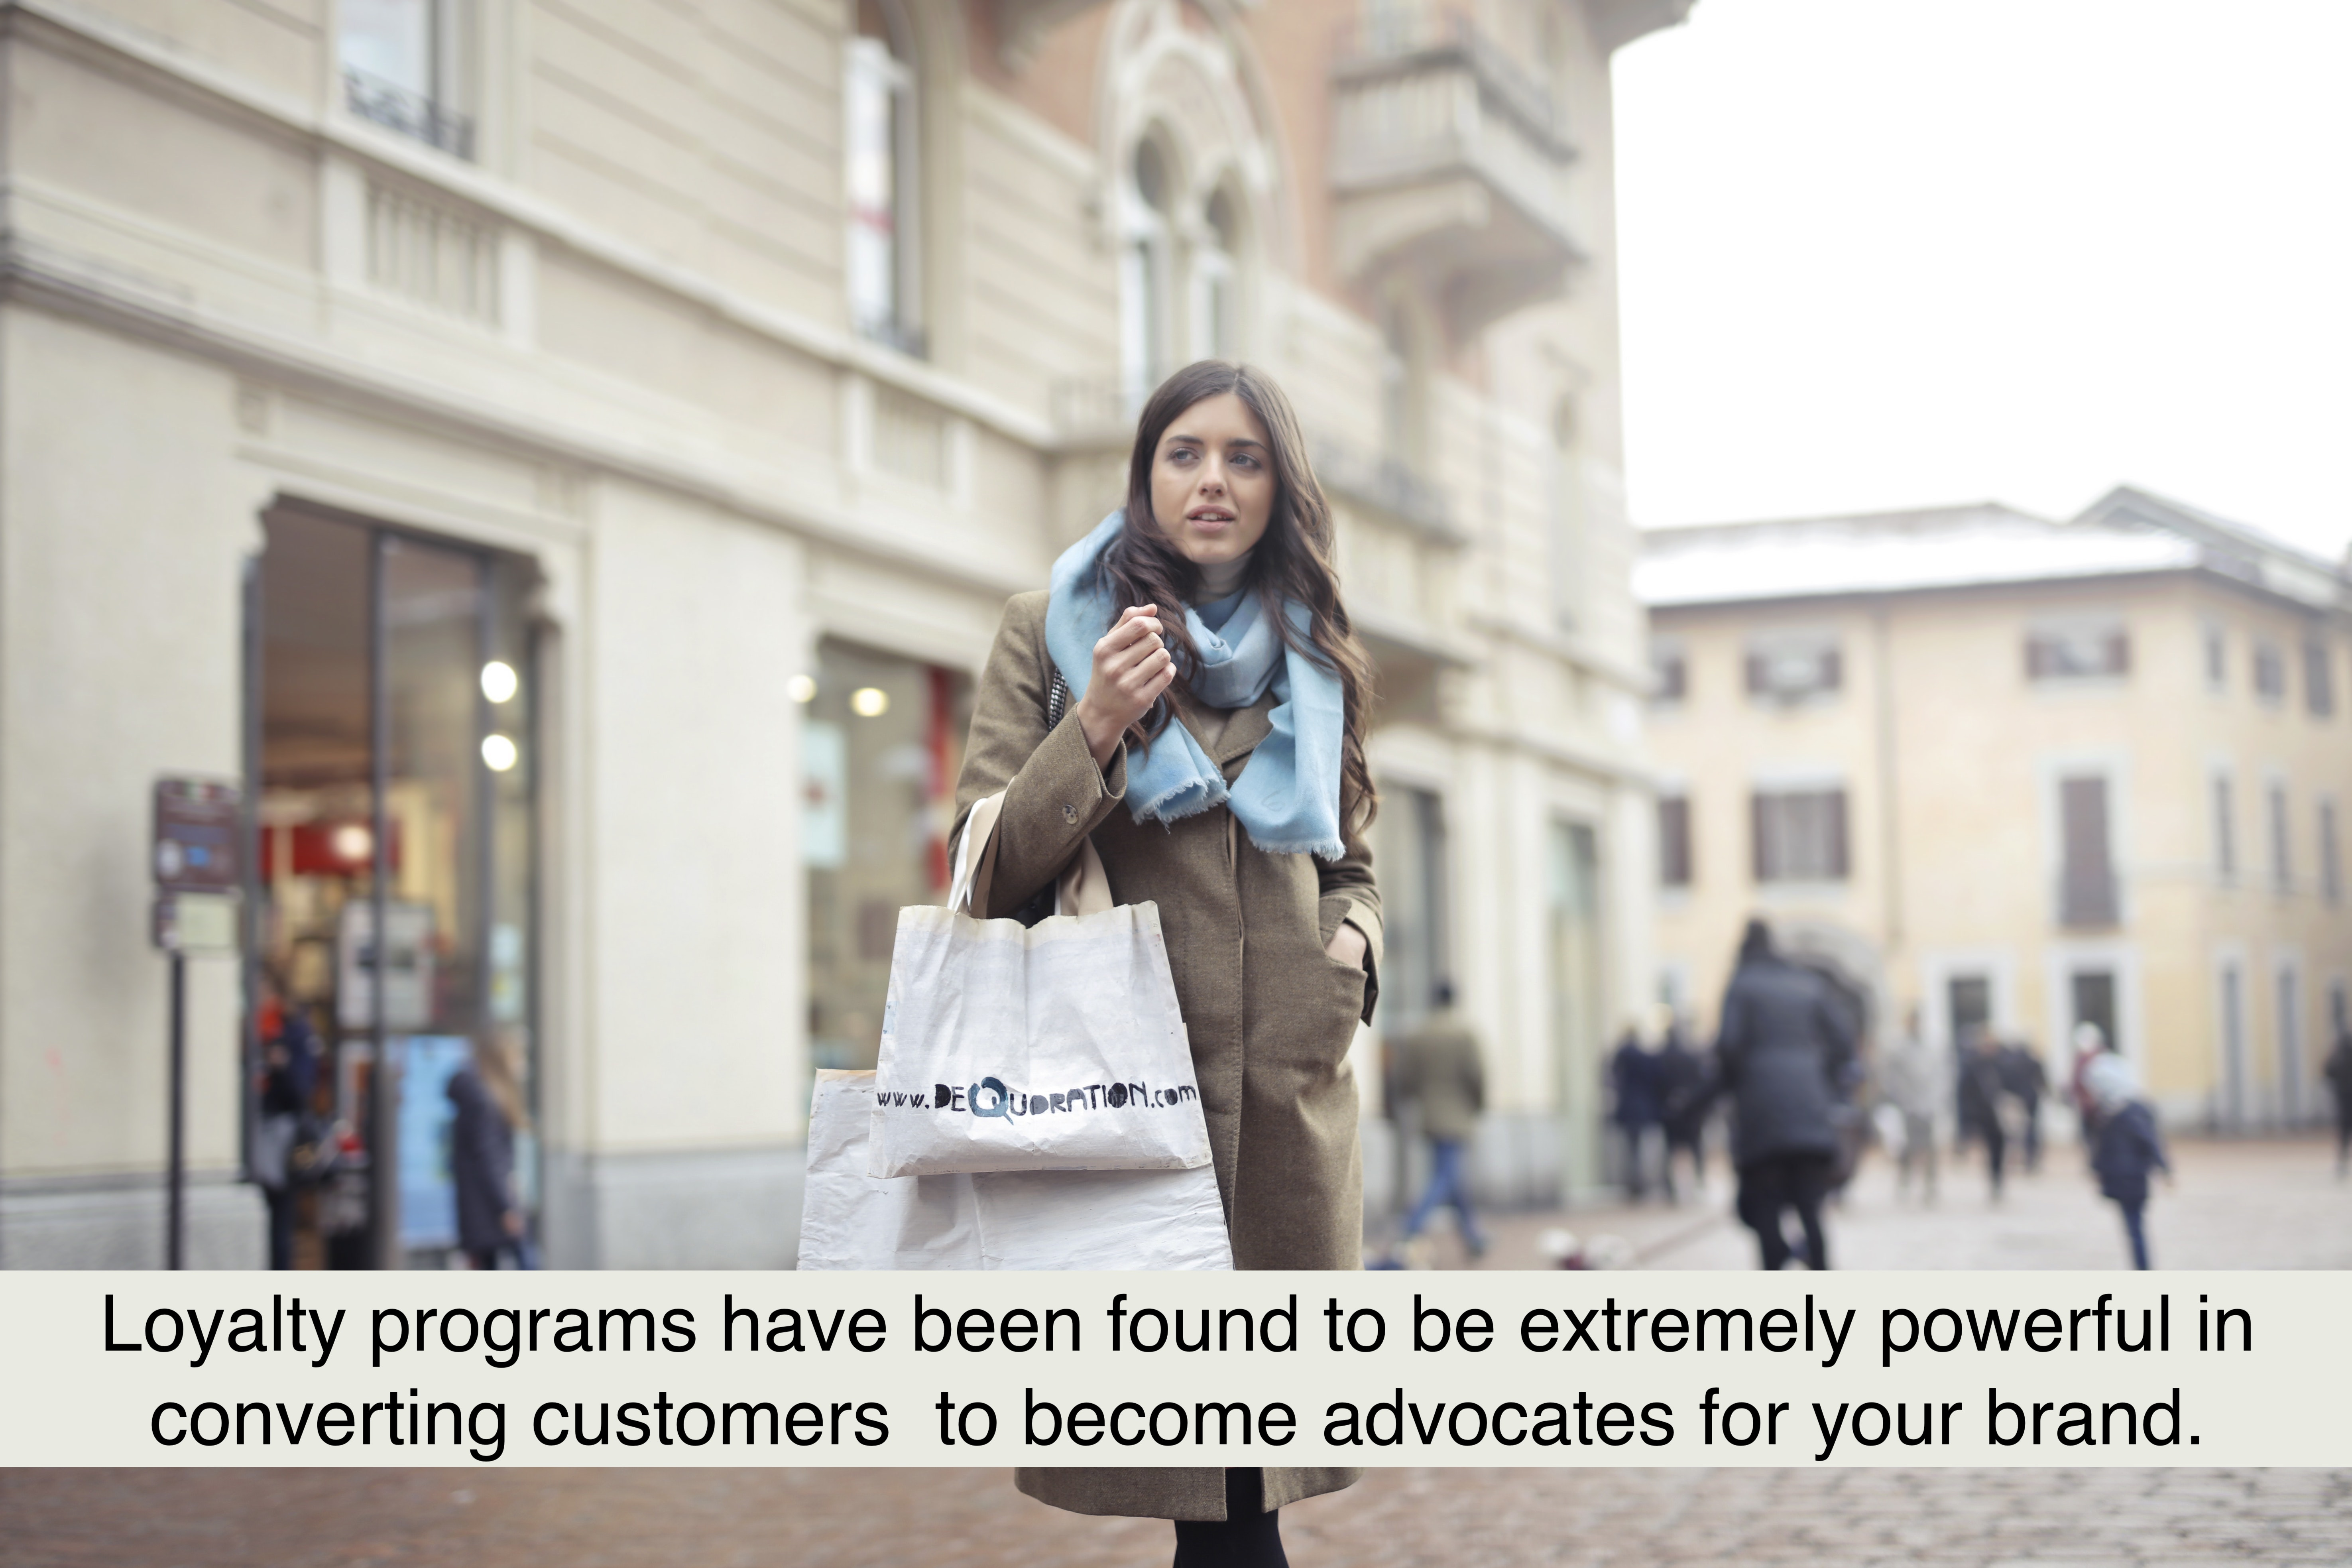 Loyalty programs have been found to be extremely powerful in converting customers to become advocates for your brand.